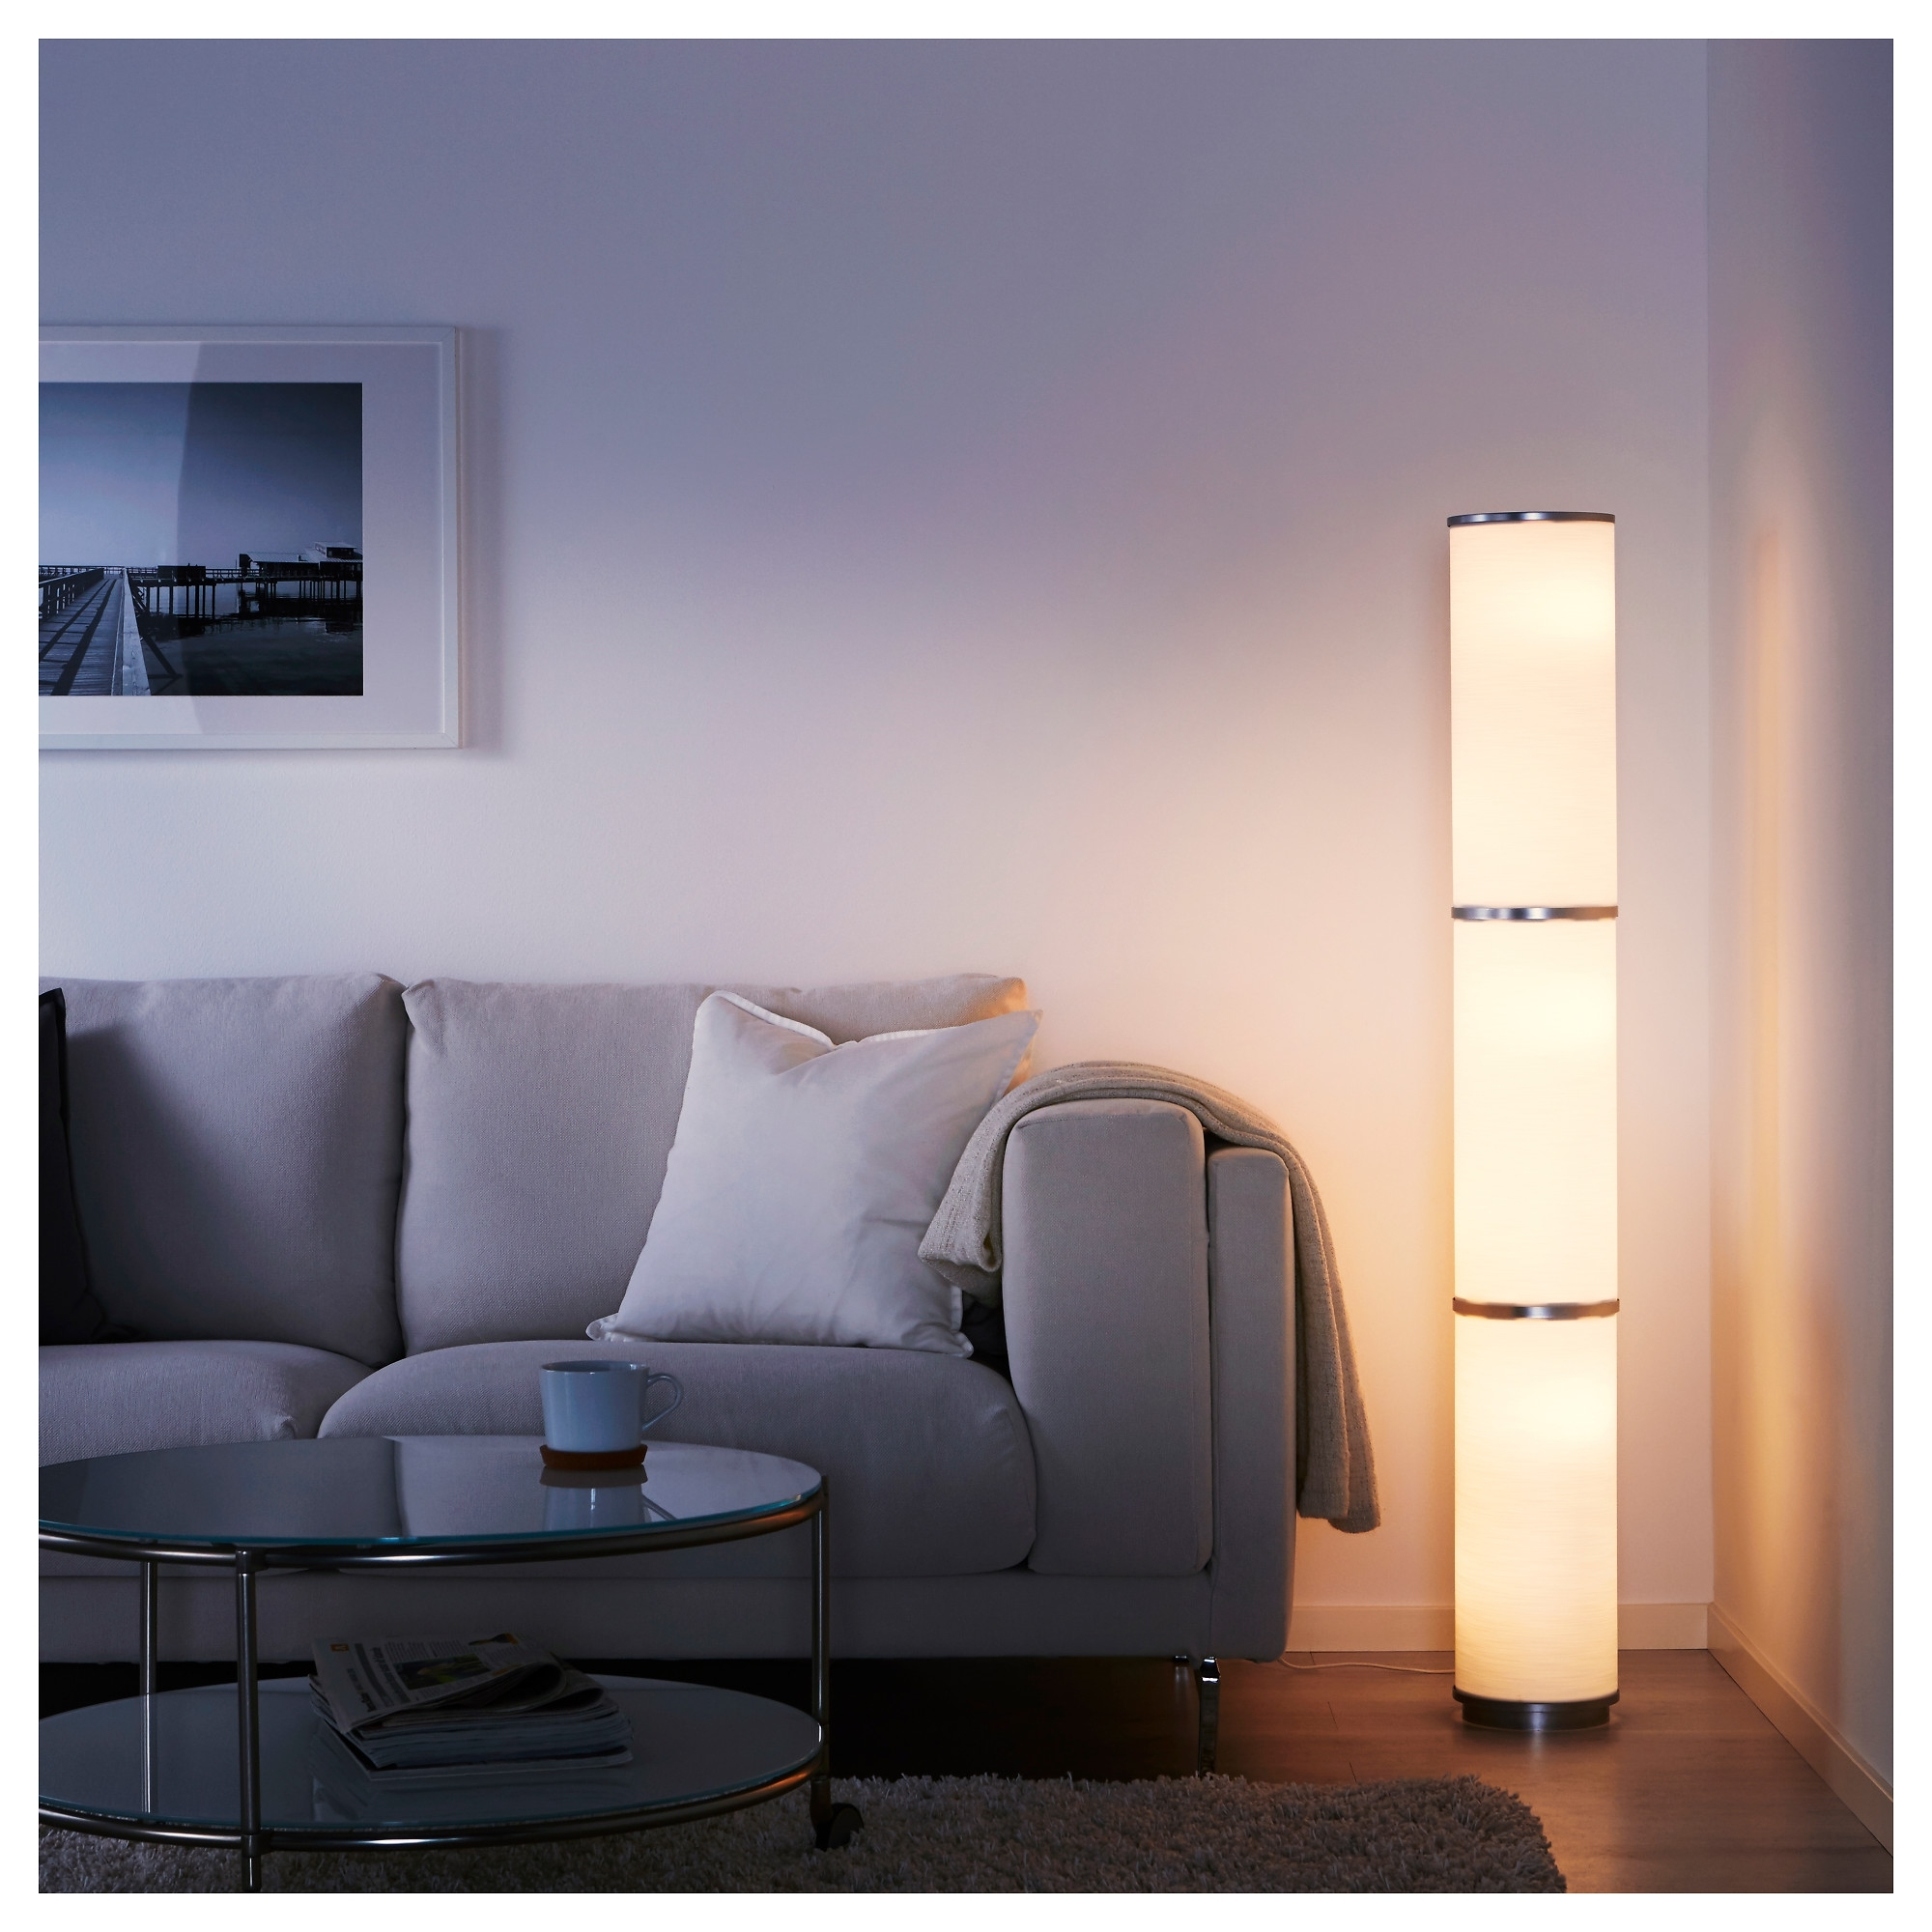 Inspiration about Lamp : Images Of Arc Floor Lamp Ikea Picture Inspirations Lamps Intended For Living Room Table Lamps At Ikea (#6 of 15)